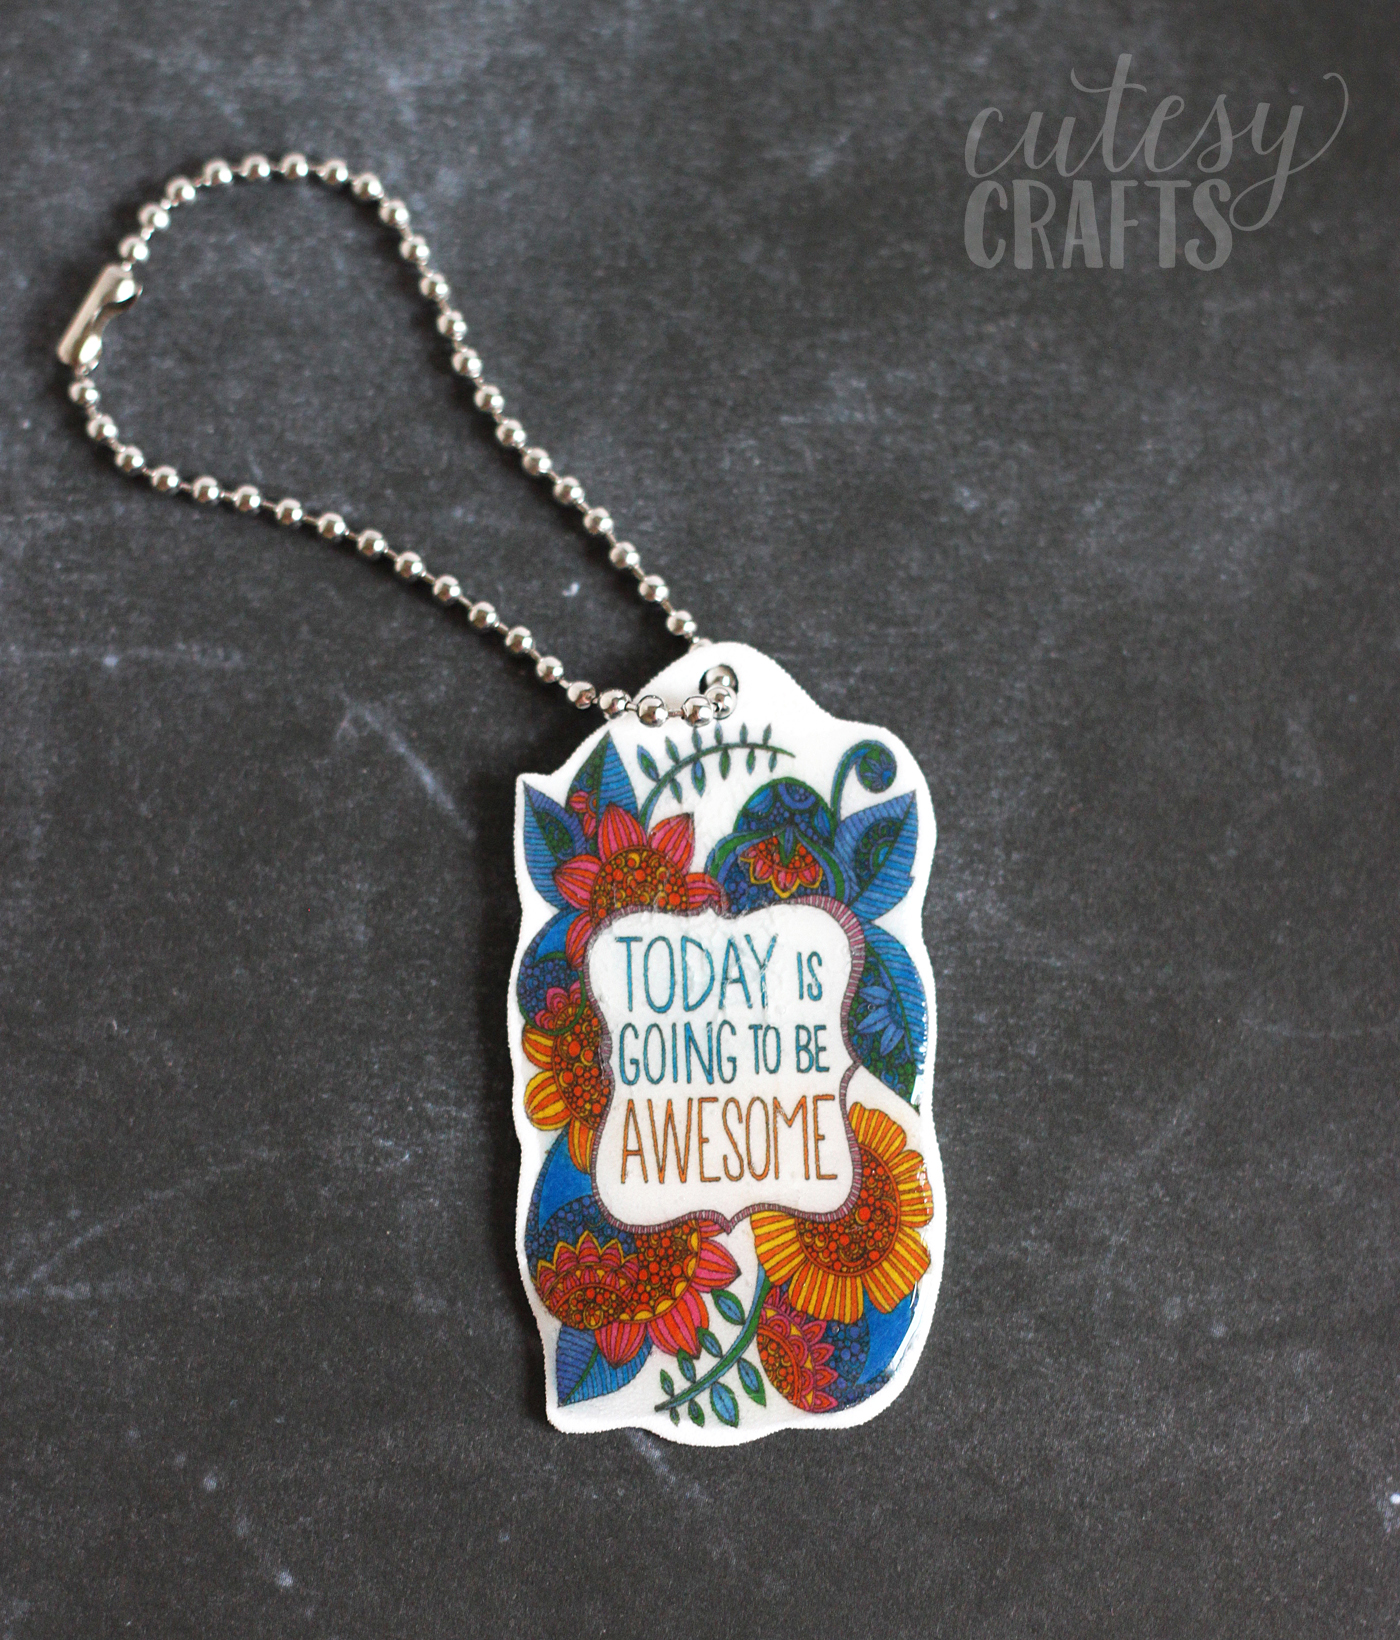 What do you do when your coloring page is done? Make something! Here's a tutorial to turn those pages into Shrinky Dink keychains!